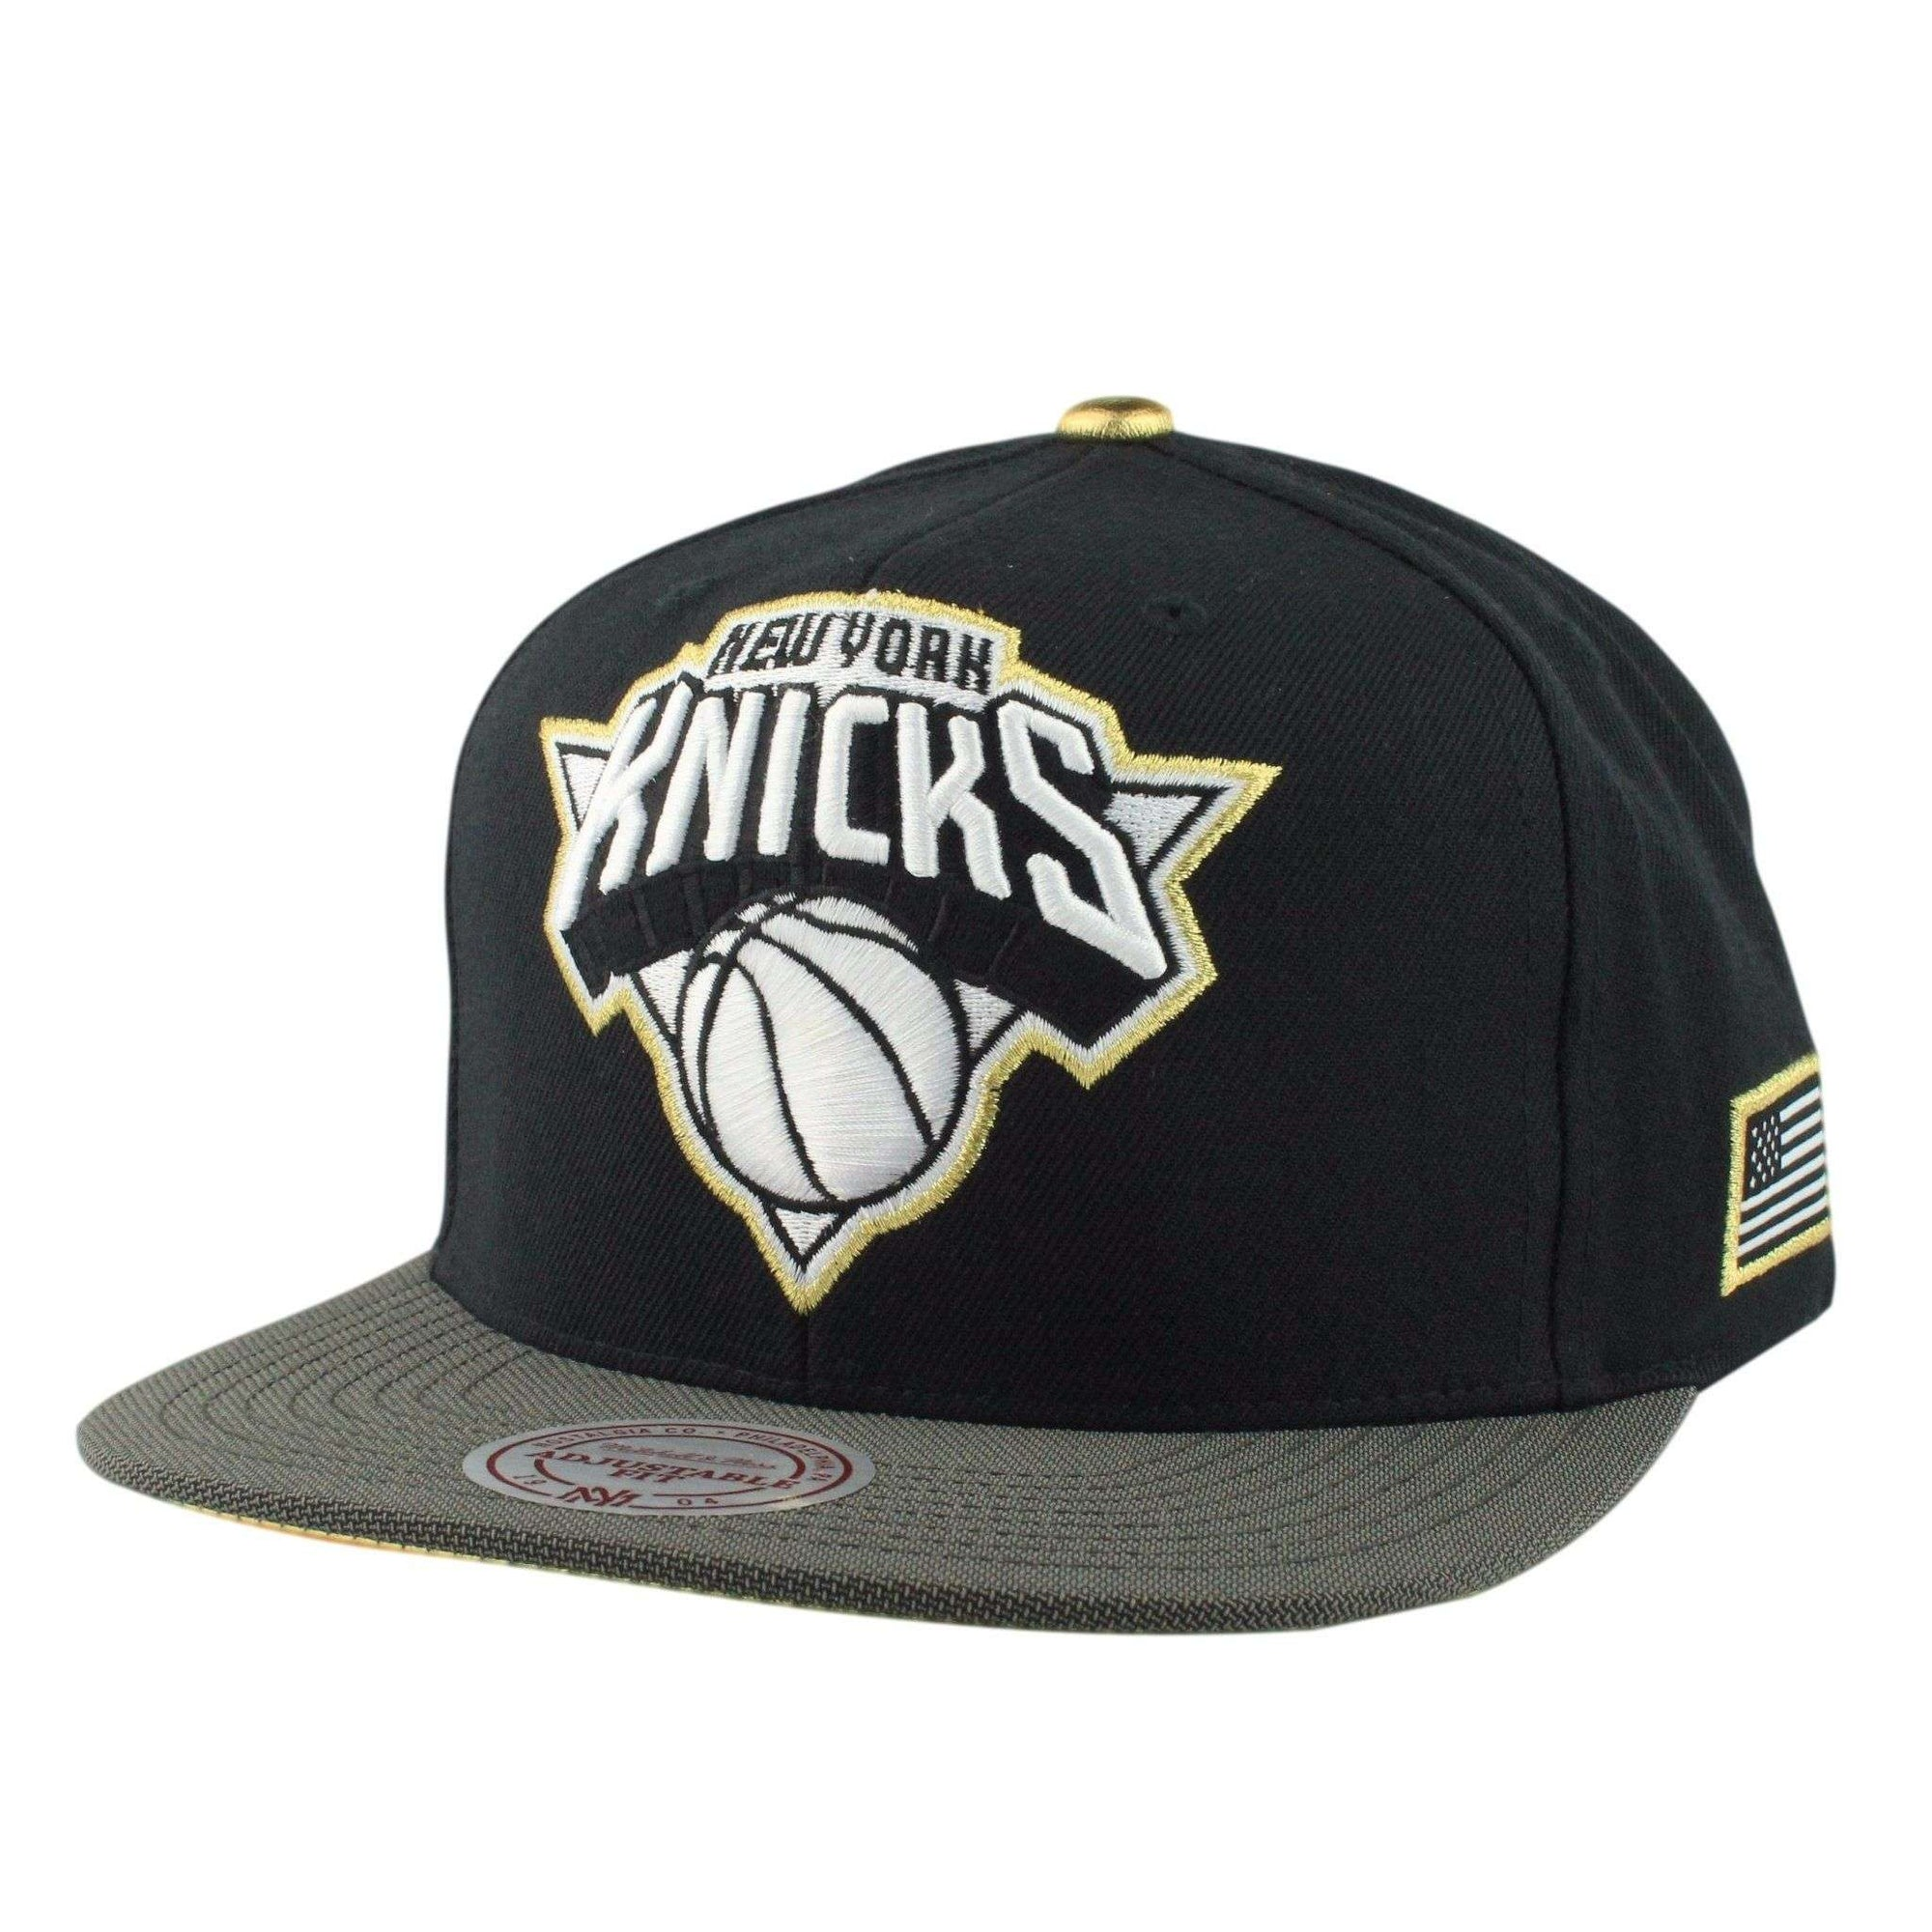 6479ae72200 Mitchell and Ness New York Knicks Gold Tip Black Gray Snapback